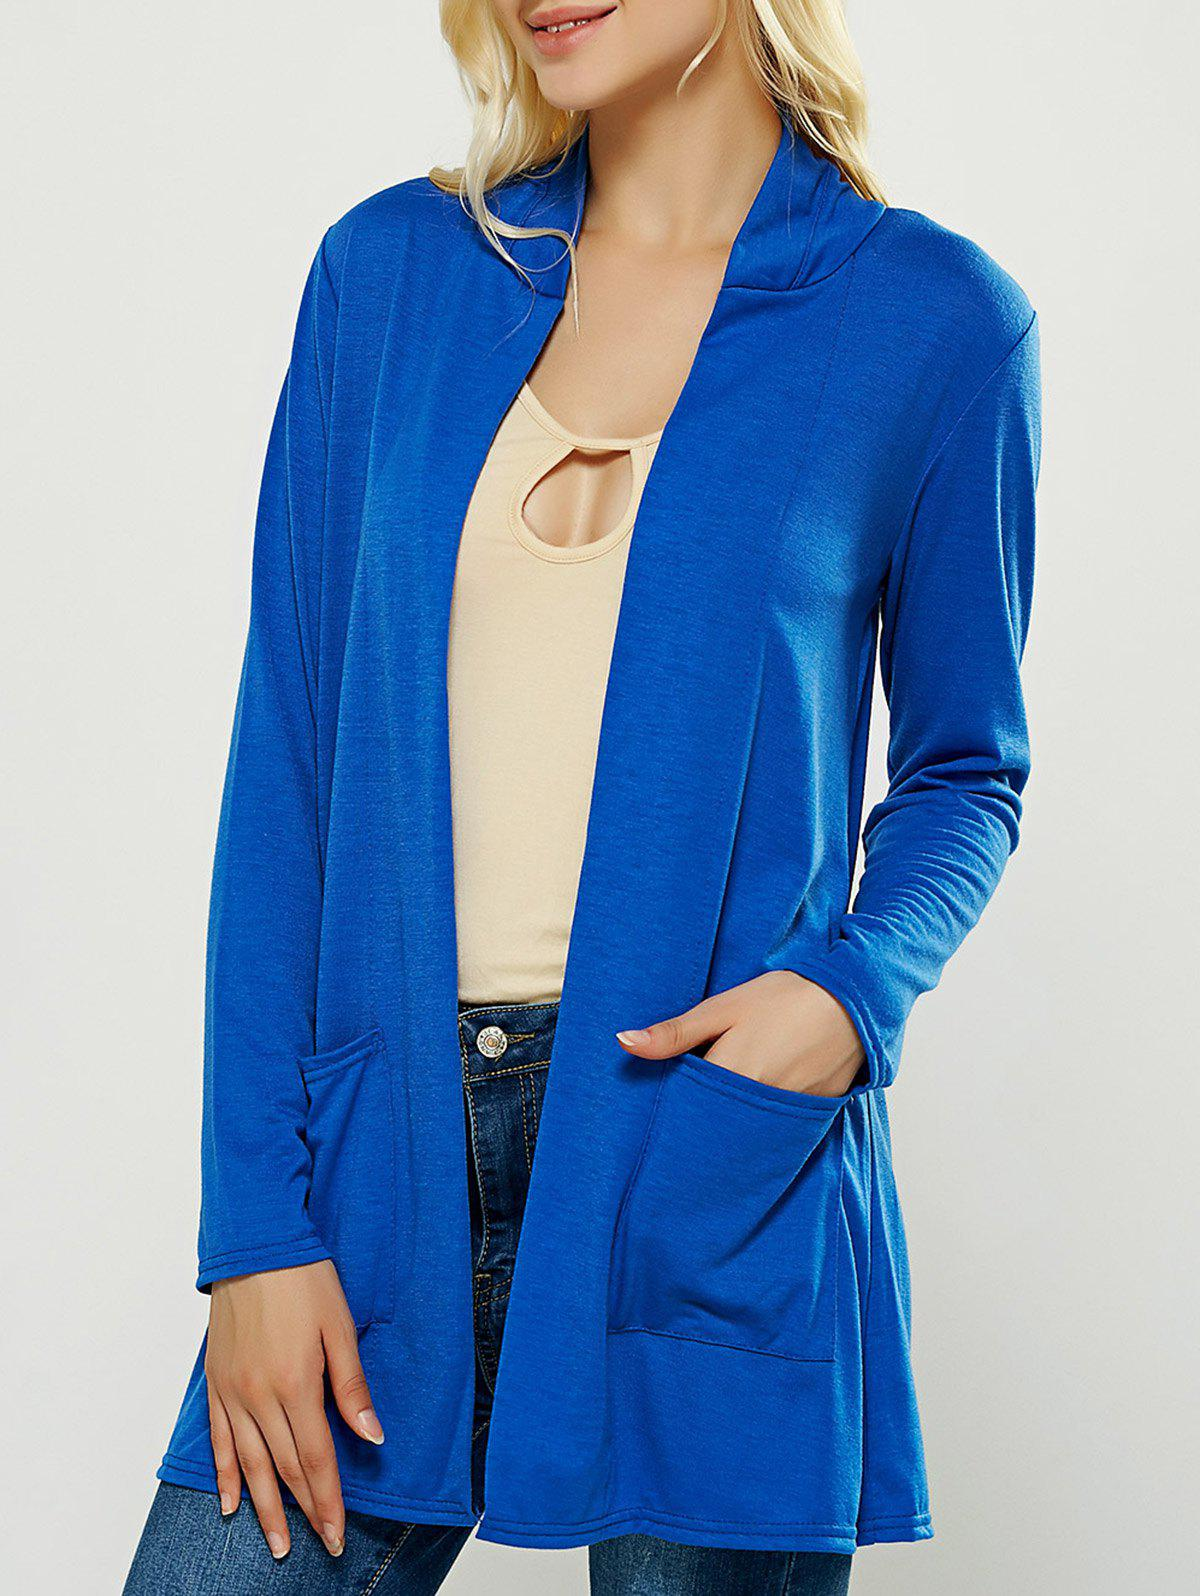 Blue Casual Pocket Design Long Cardigan Rosegal Com